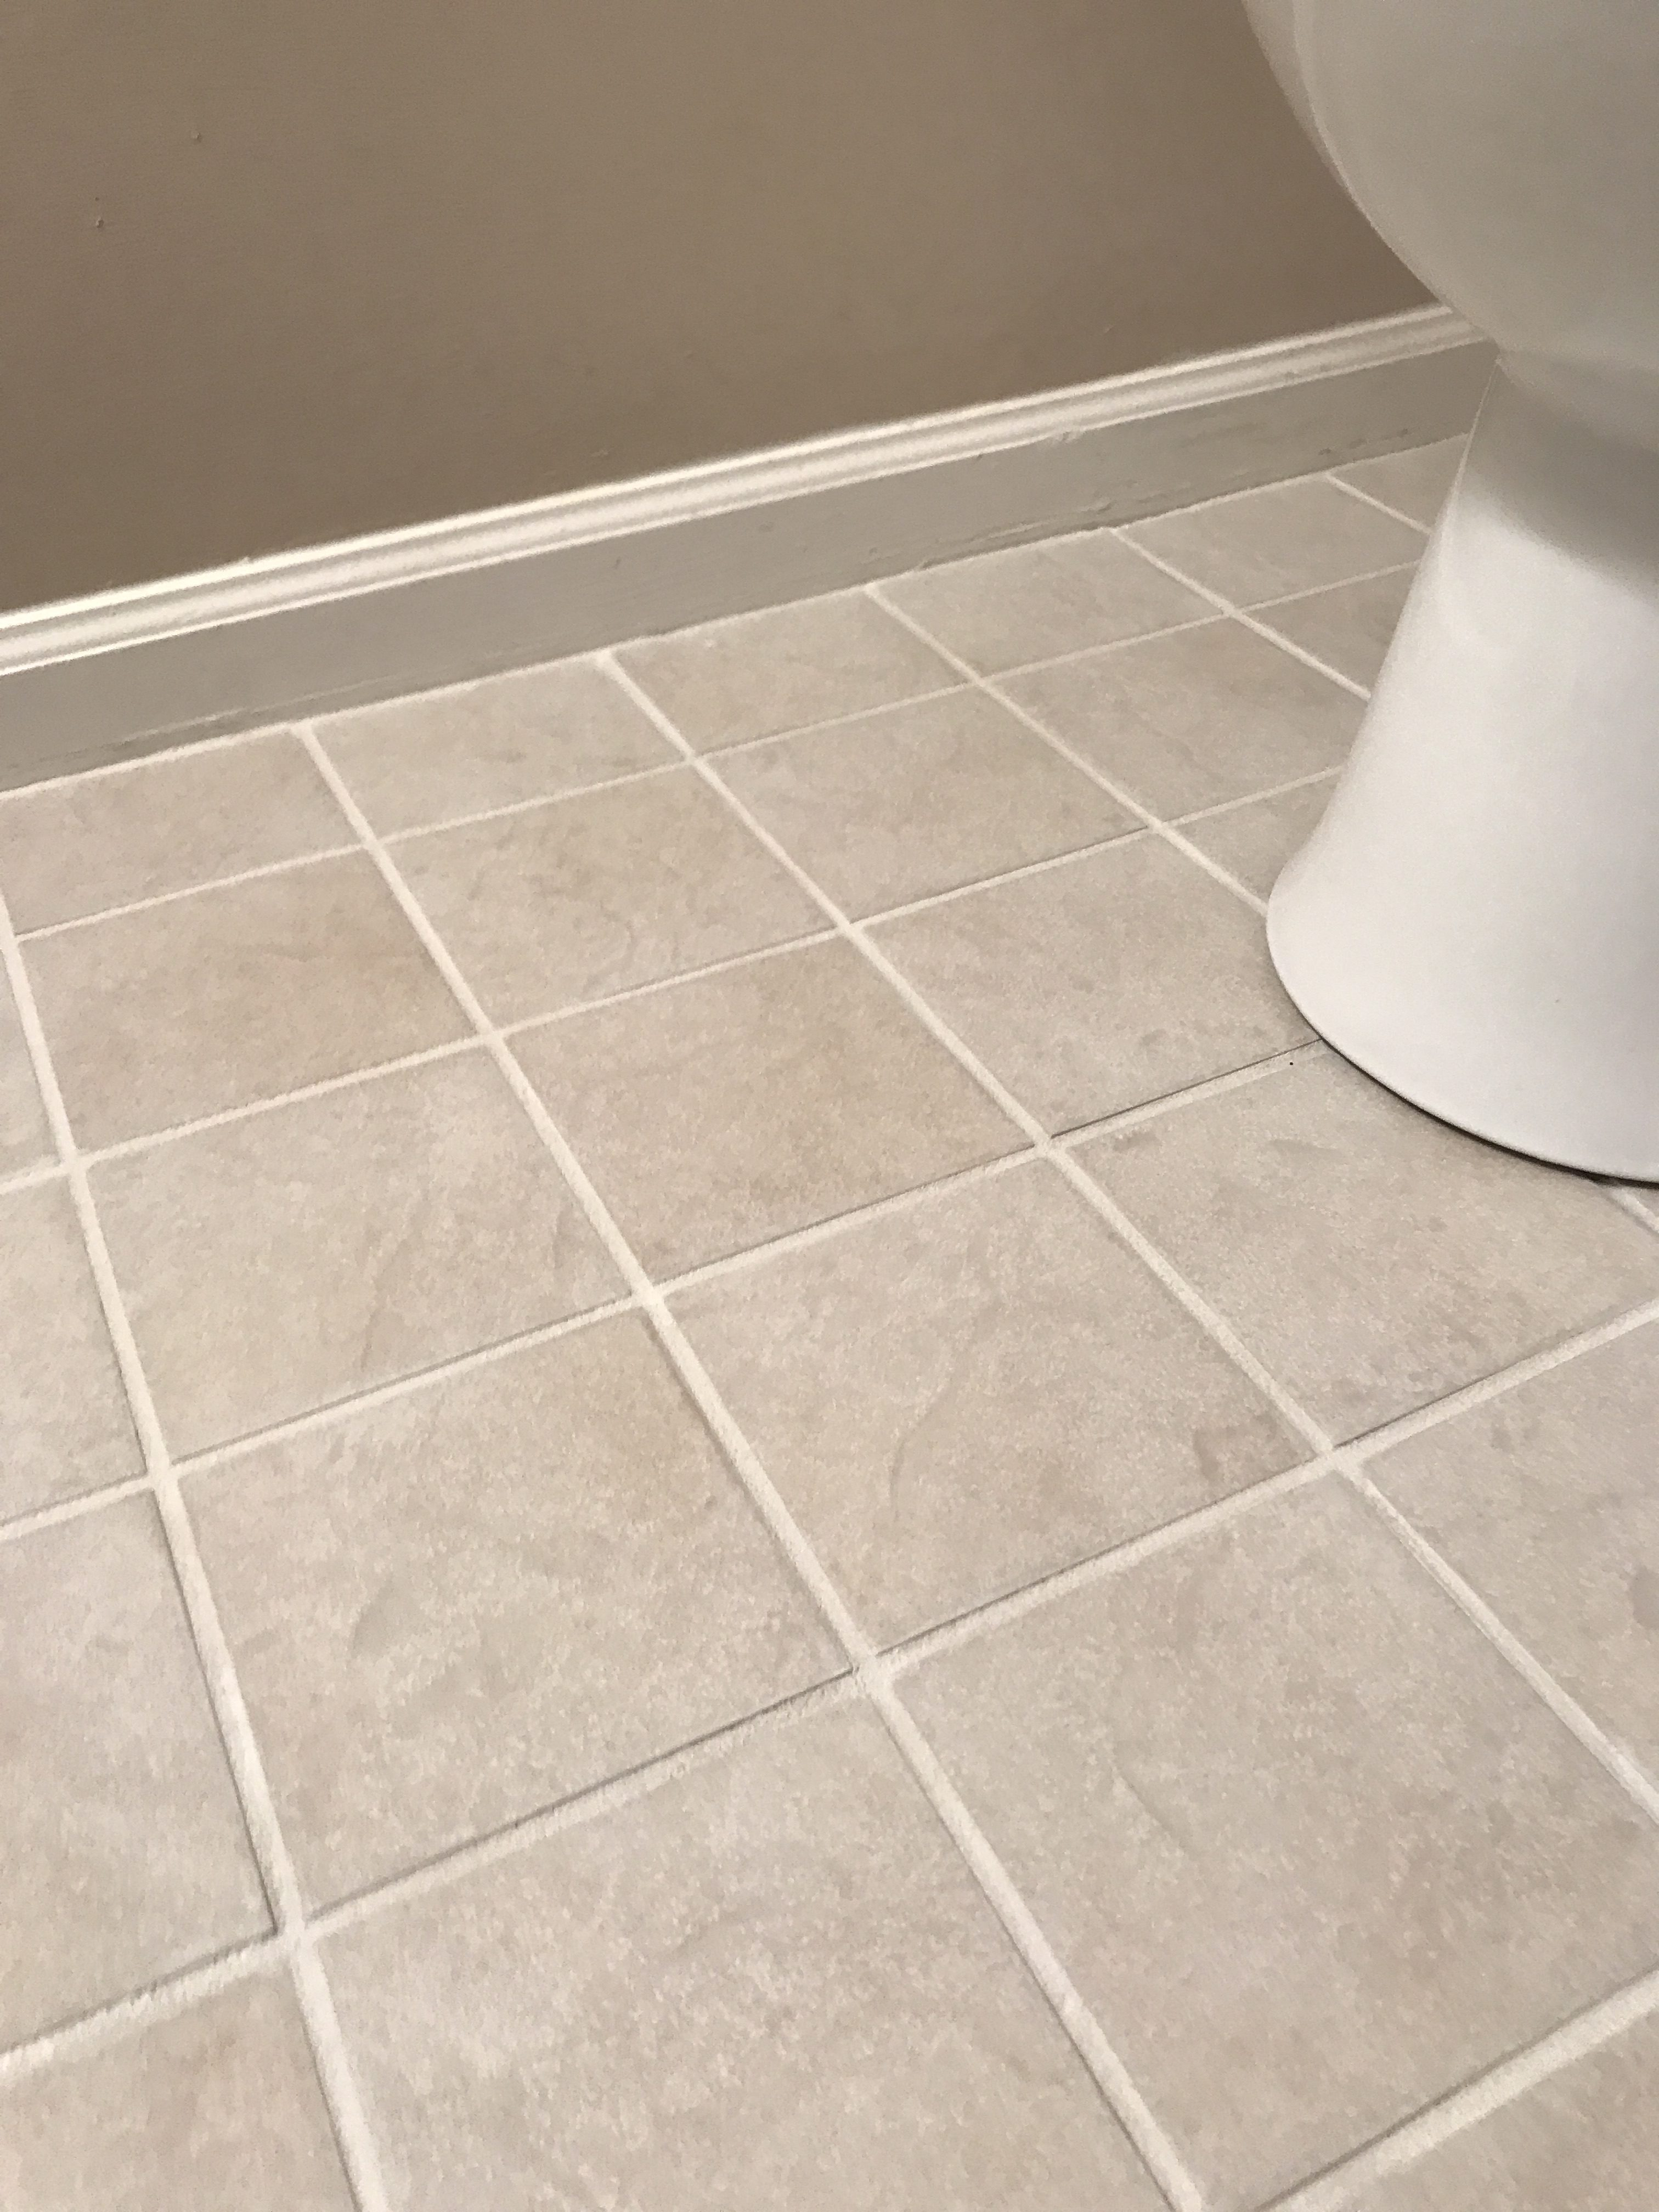 Ugly grout makeover | DIY Tile Makeover | Grout Renew